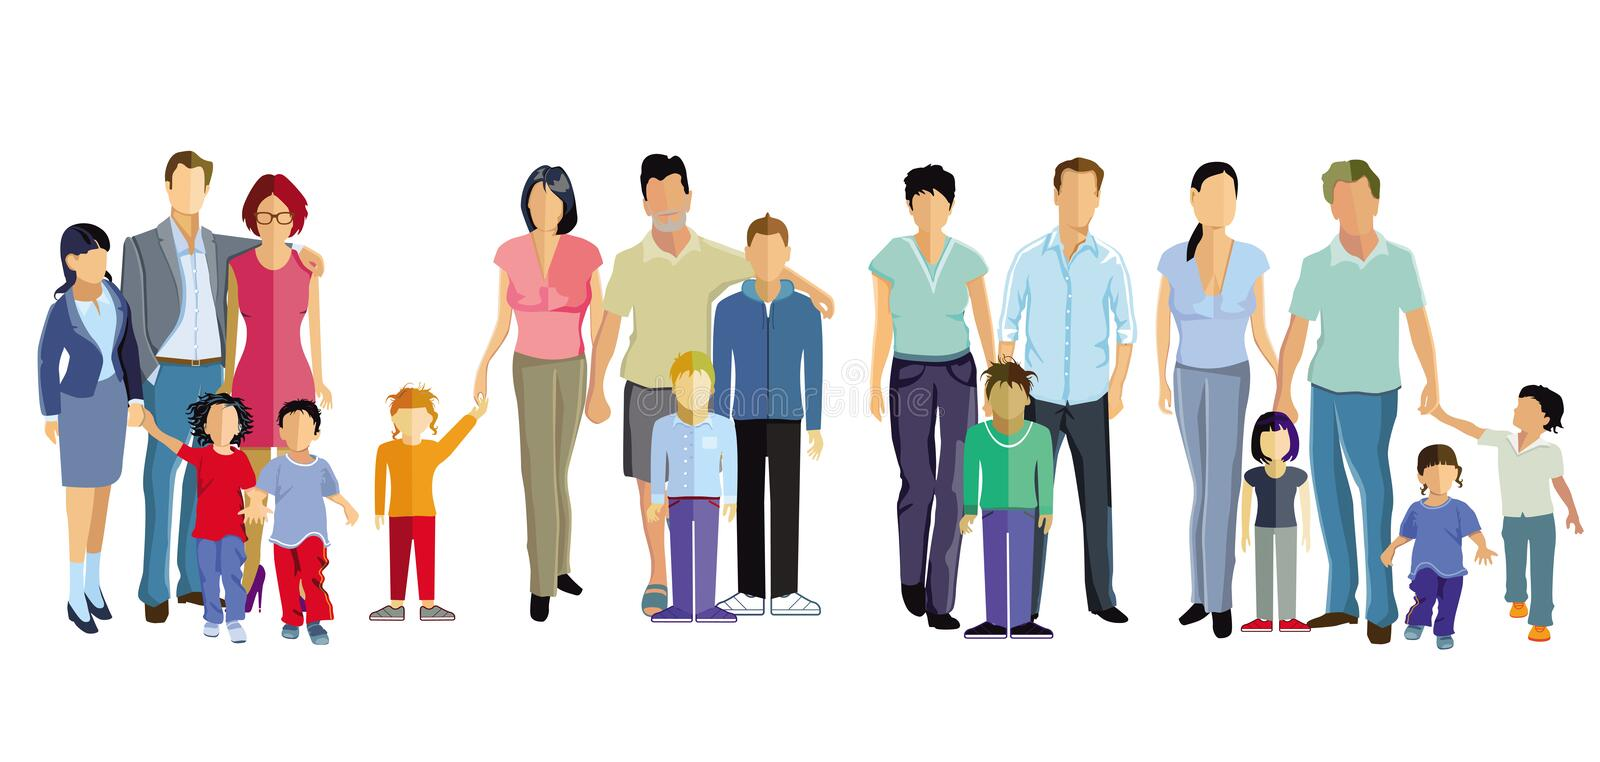 Four families royalty free stock photography